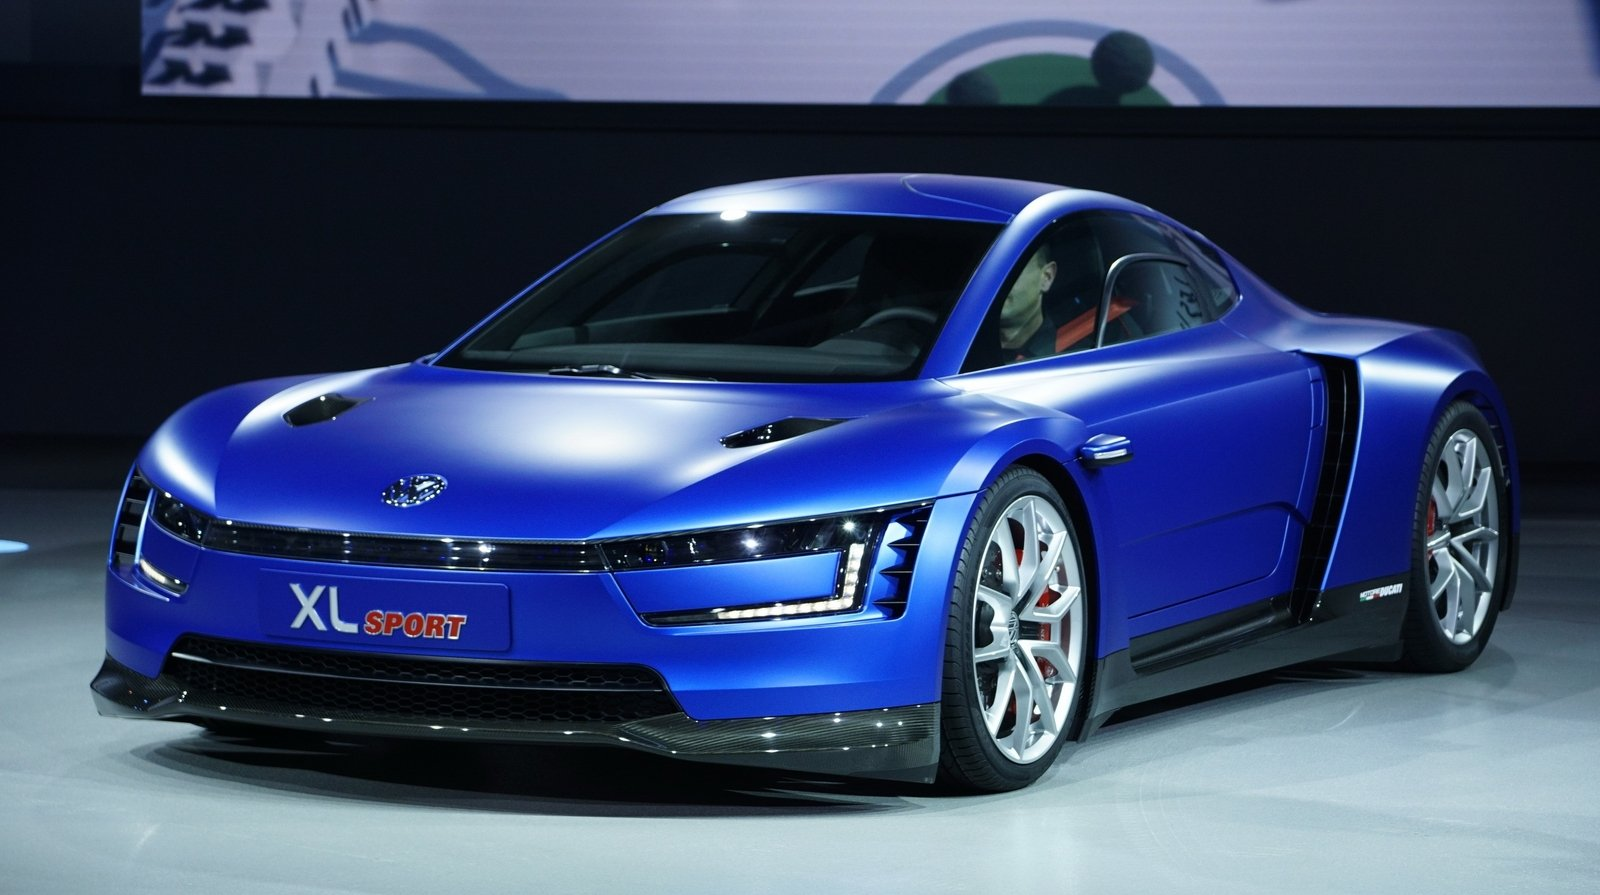 Volkswagen Sports Car Company